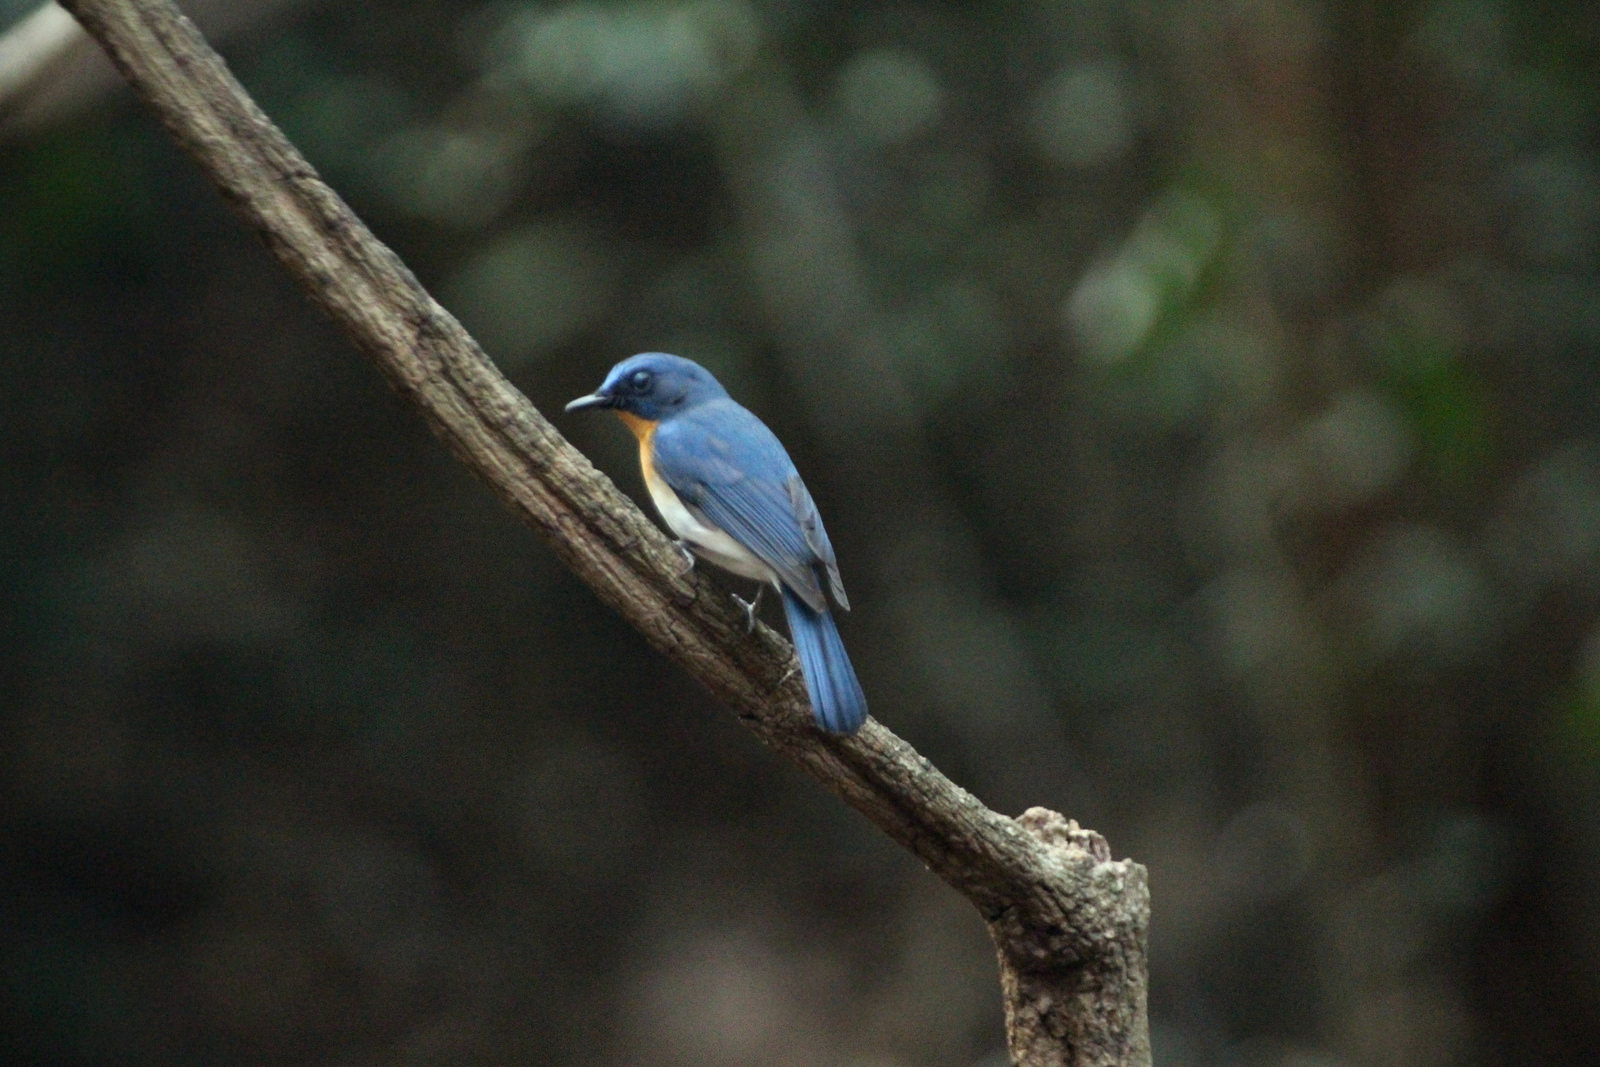 Male, Tickell's Blue Flycatcher, Cyornis tickelliae